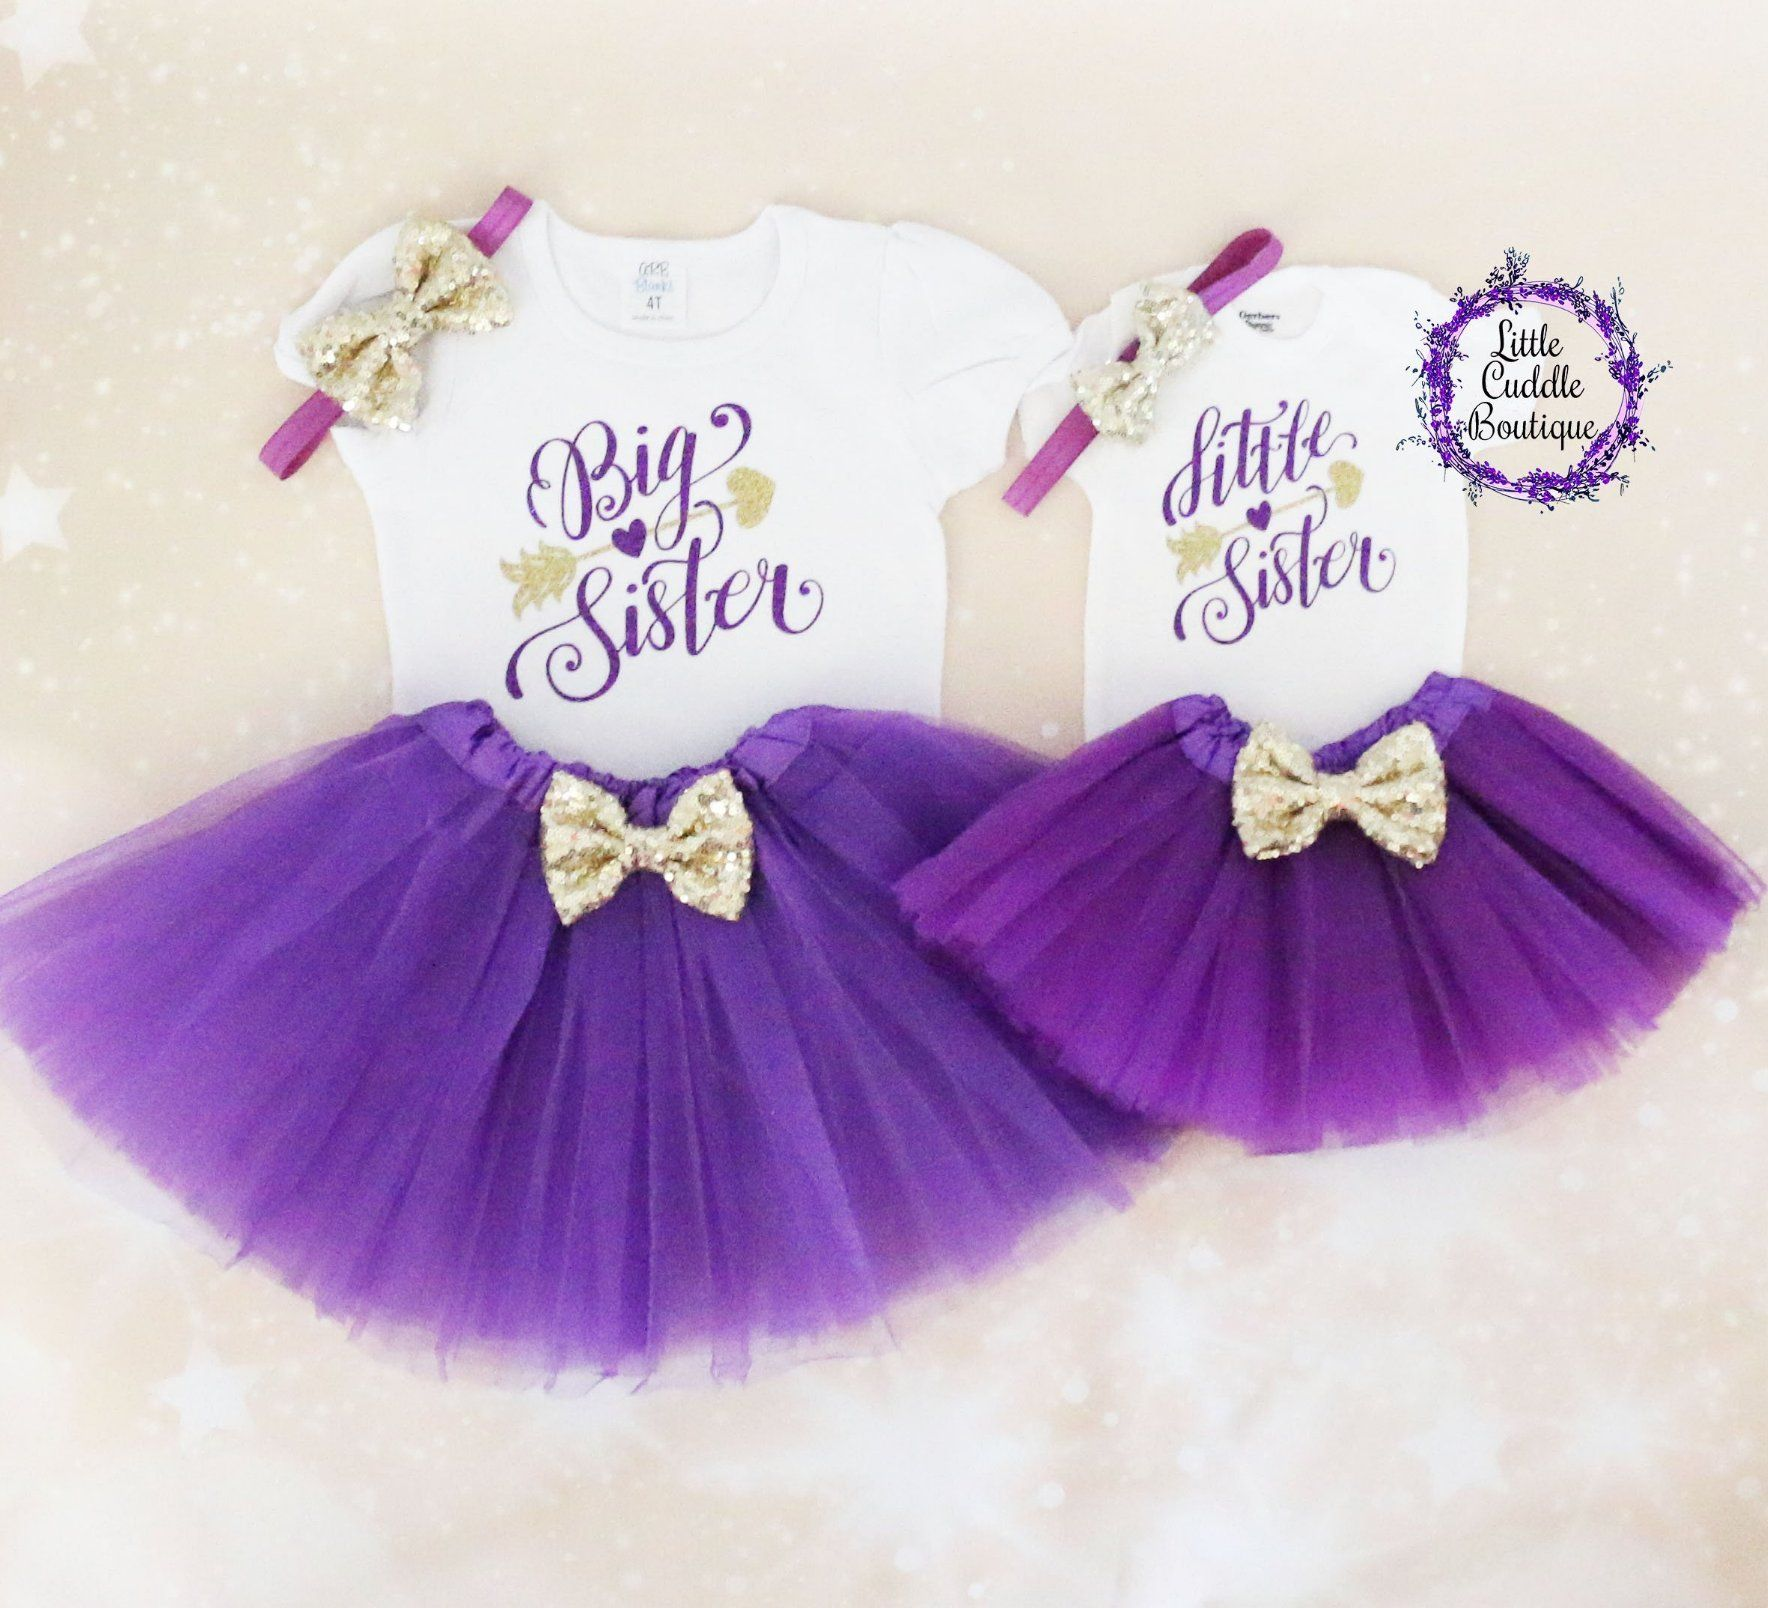 Big Sister Little Sister Tutu Outfits Tutu Outfits Big Sister Little Sister Sister Outfits